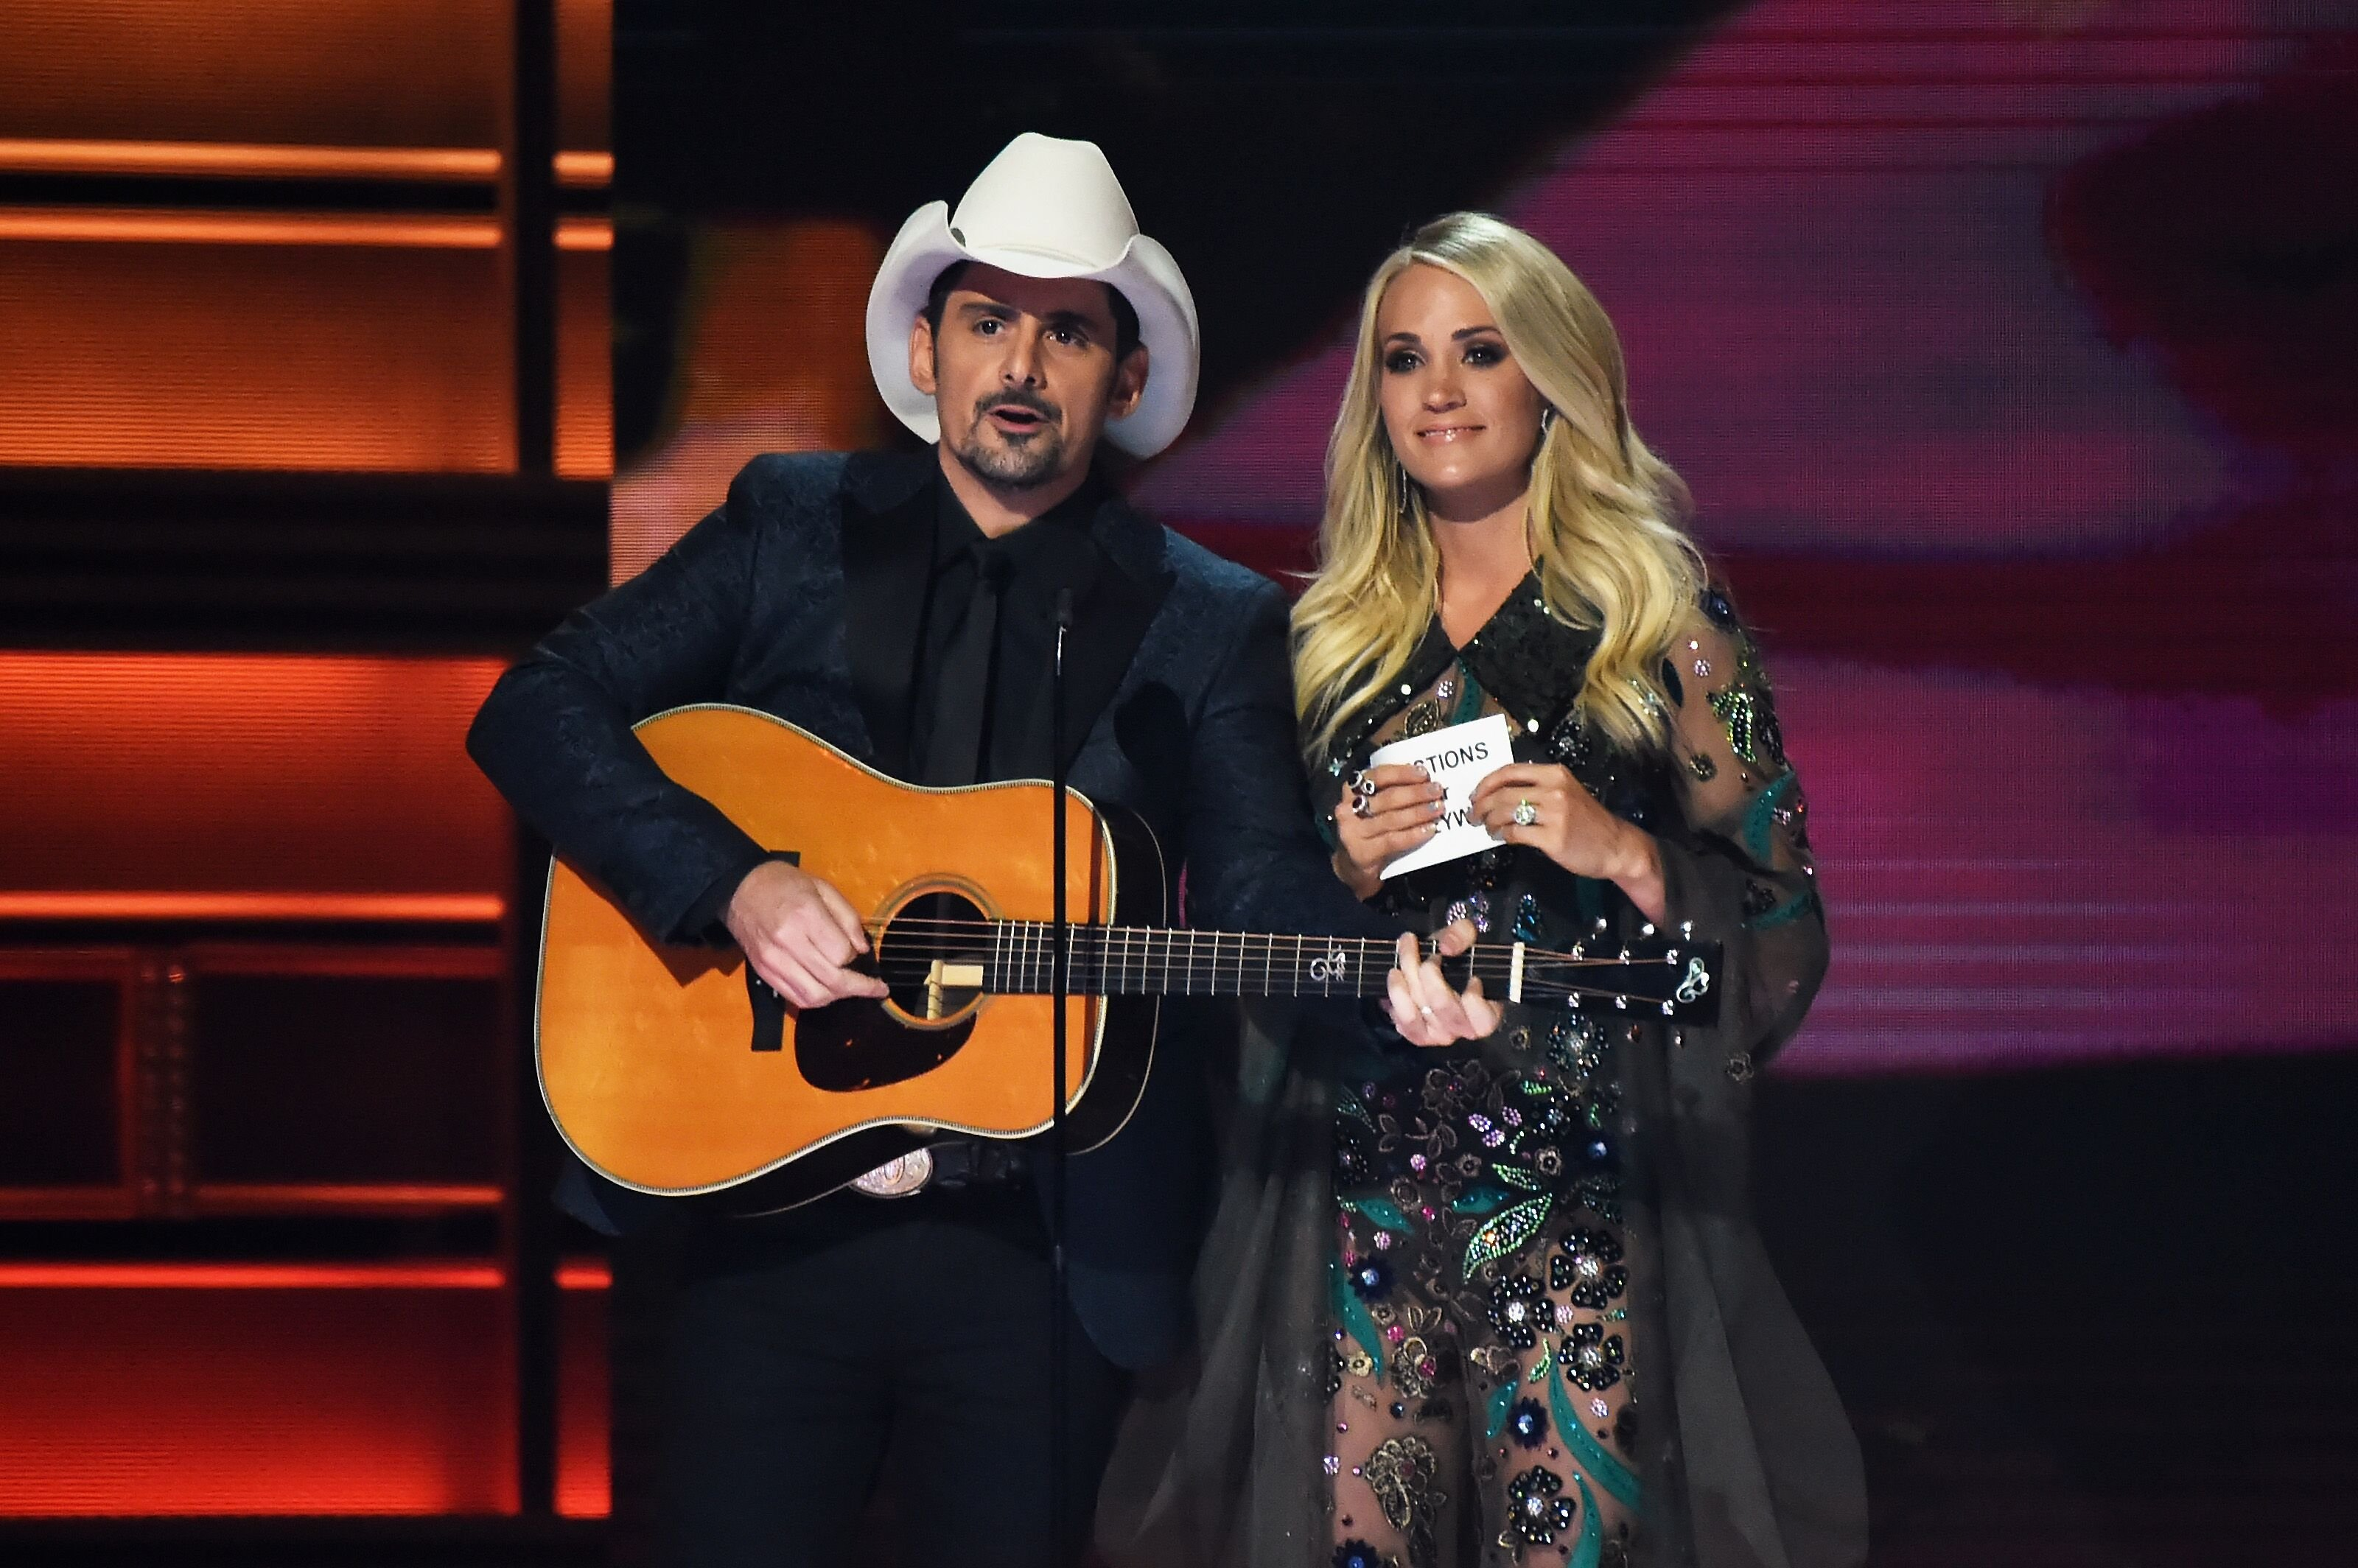 Brad Paisley and Carrie Underwood co-hosting the 51st annual CMA Awards at the Bridgestone Arena on November 8, 2017 in Nashville, Tennessee | Photo: Getty Images